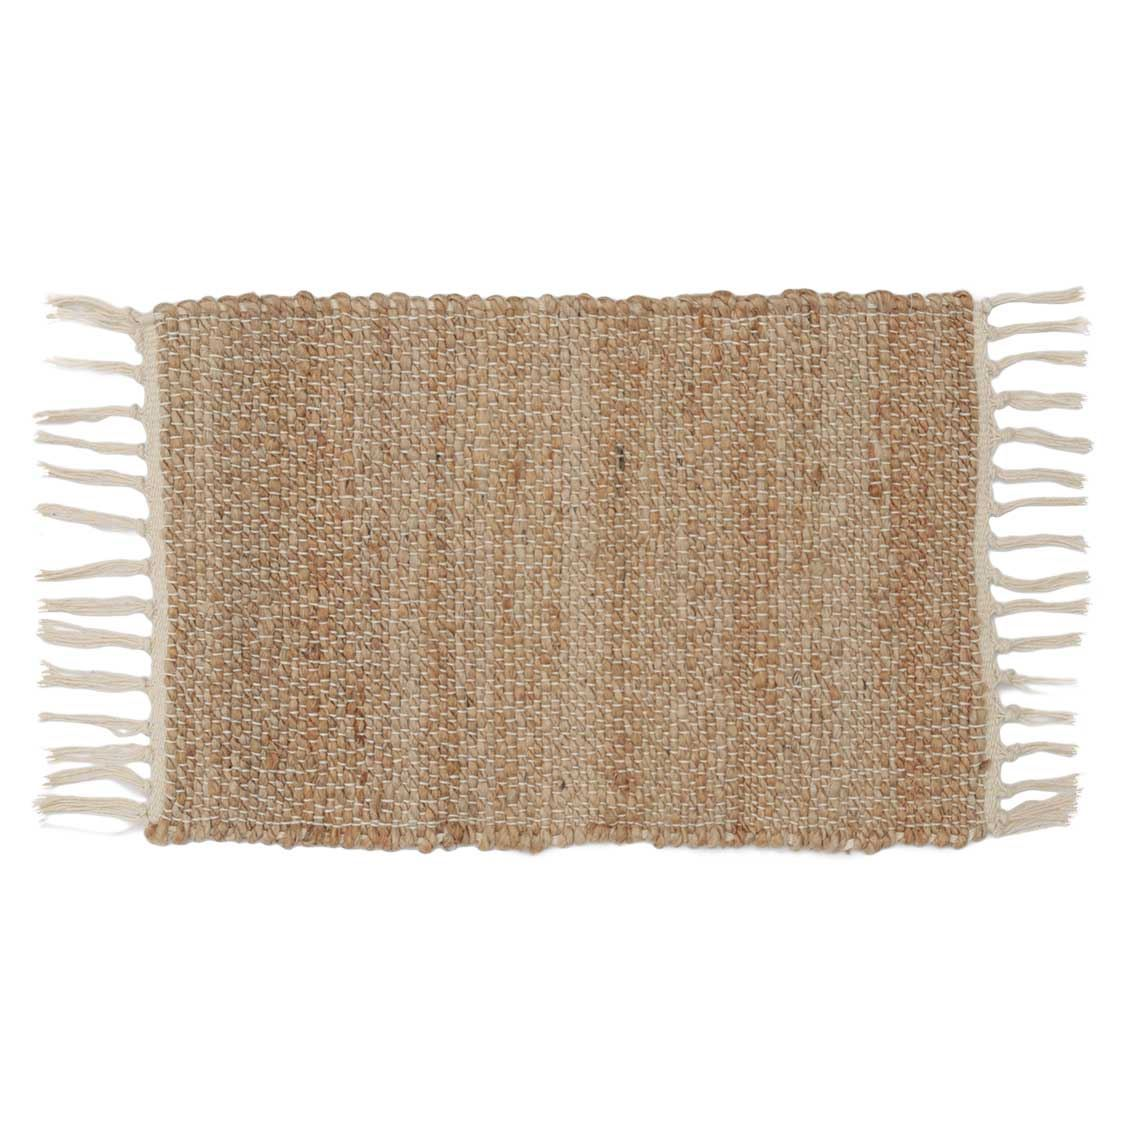 Sasika Placemat Size W 33cm x D 48cm x H 1cm in Natural Jute Freedom by Freedom, a Placemats for sale on Style Sourcebook